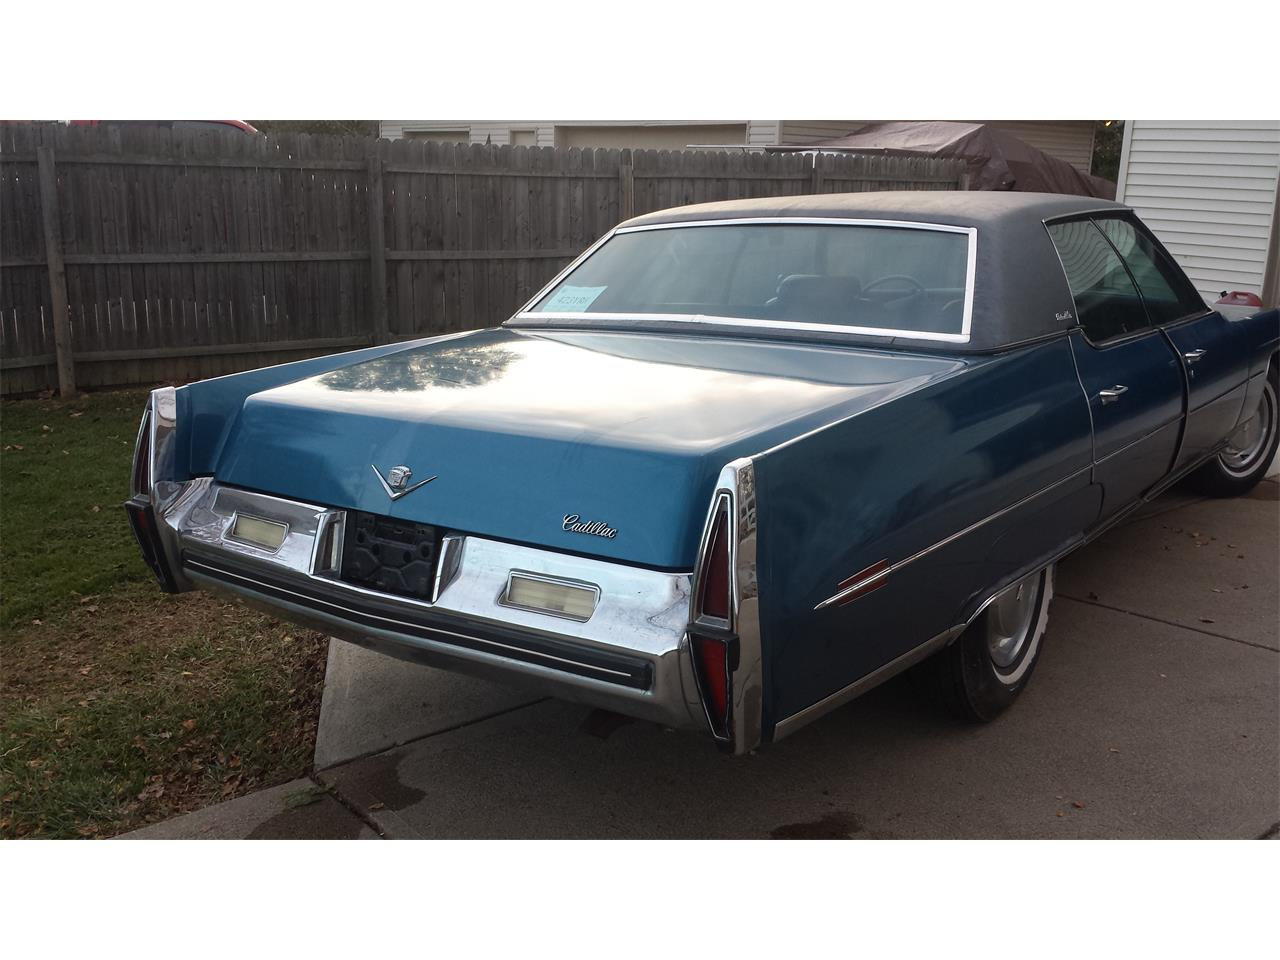 Large Picture of 1973 Cadillac DeVille located in Ohio - $5,500.00 Offered by a Private Seller - BYGT